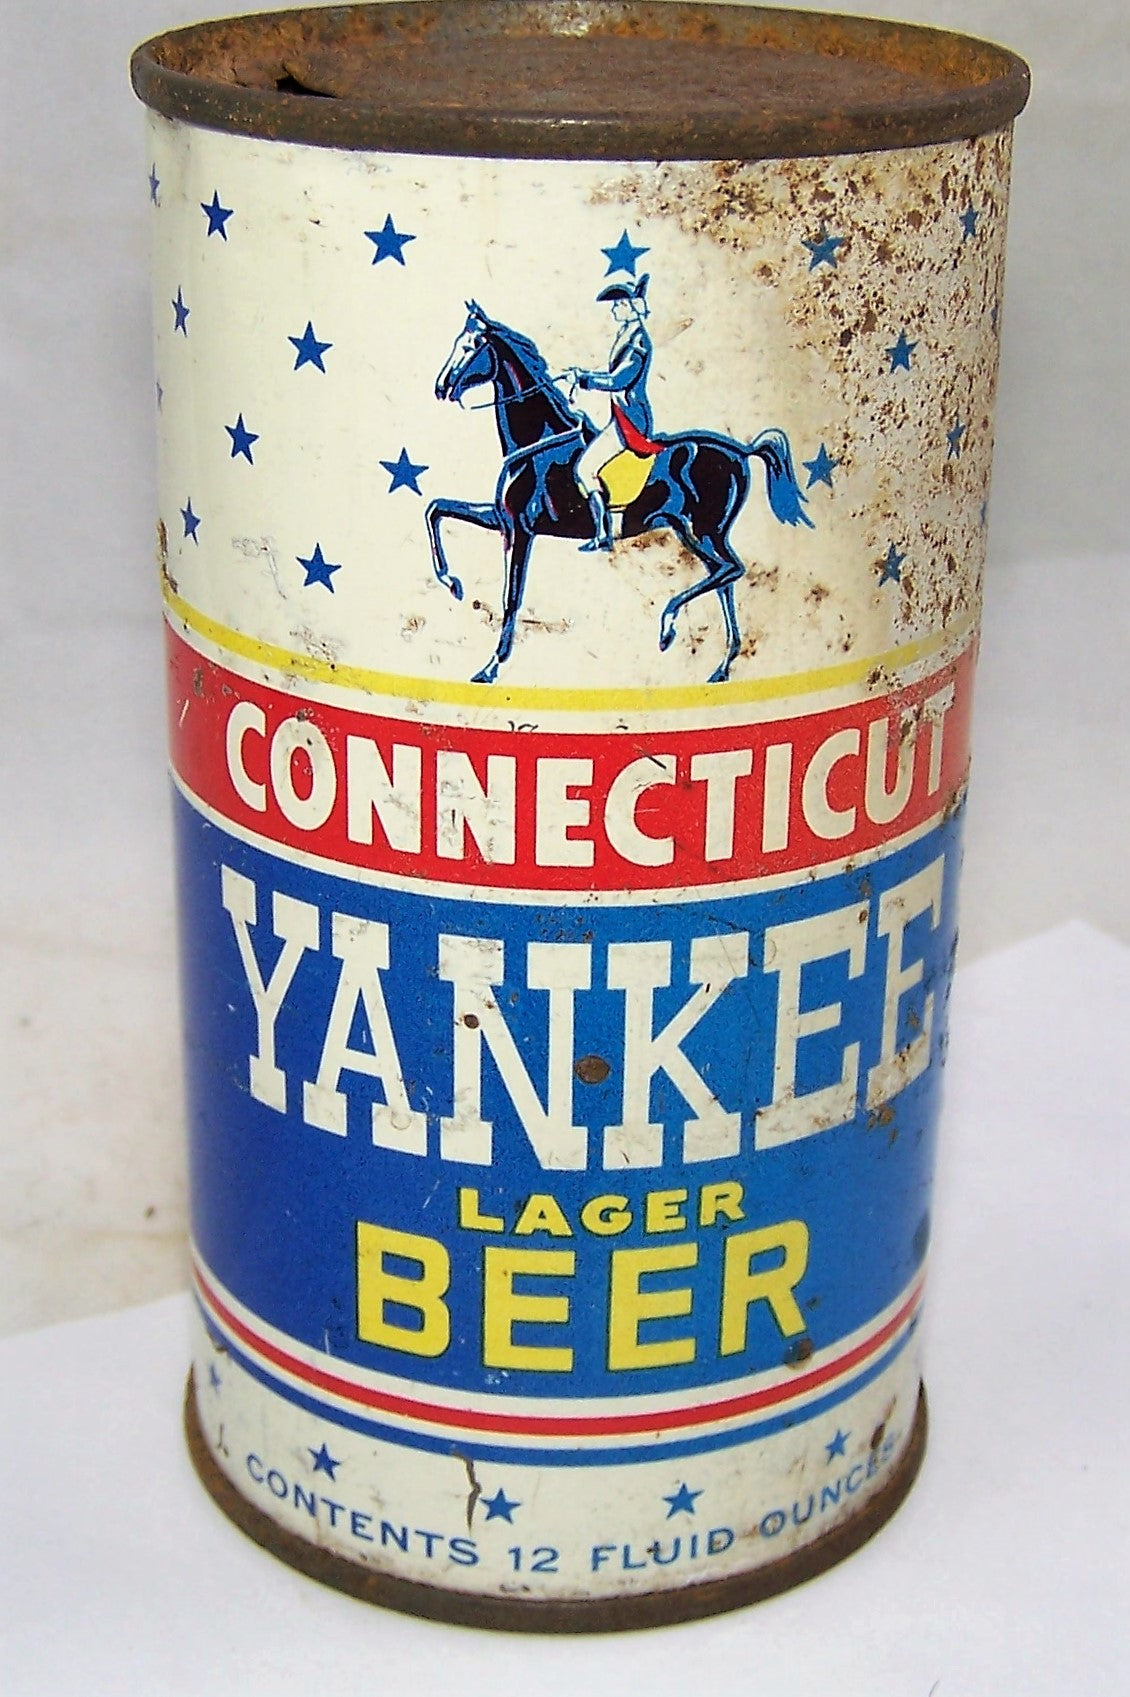 Connecticut Yankee Beer Flat Top, USBC 51-08